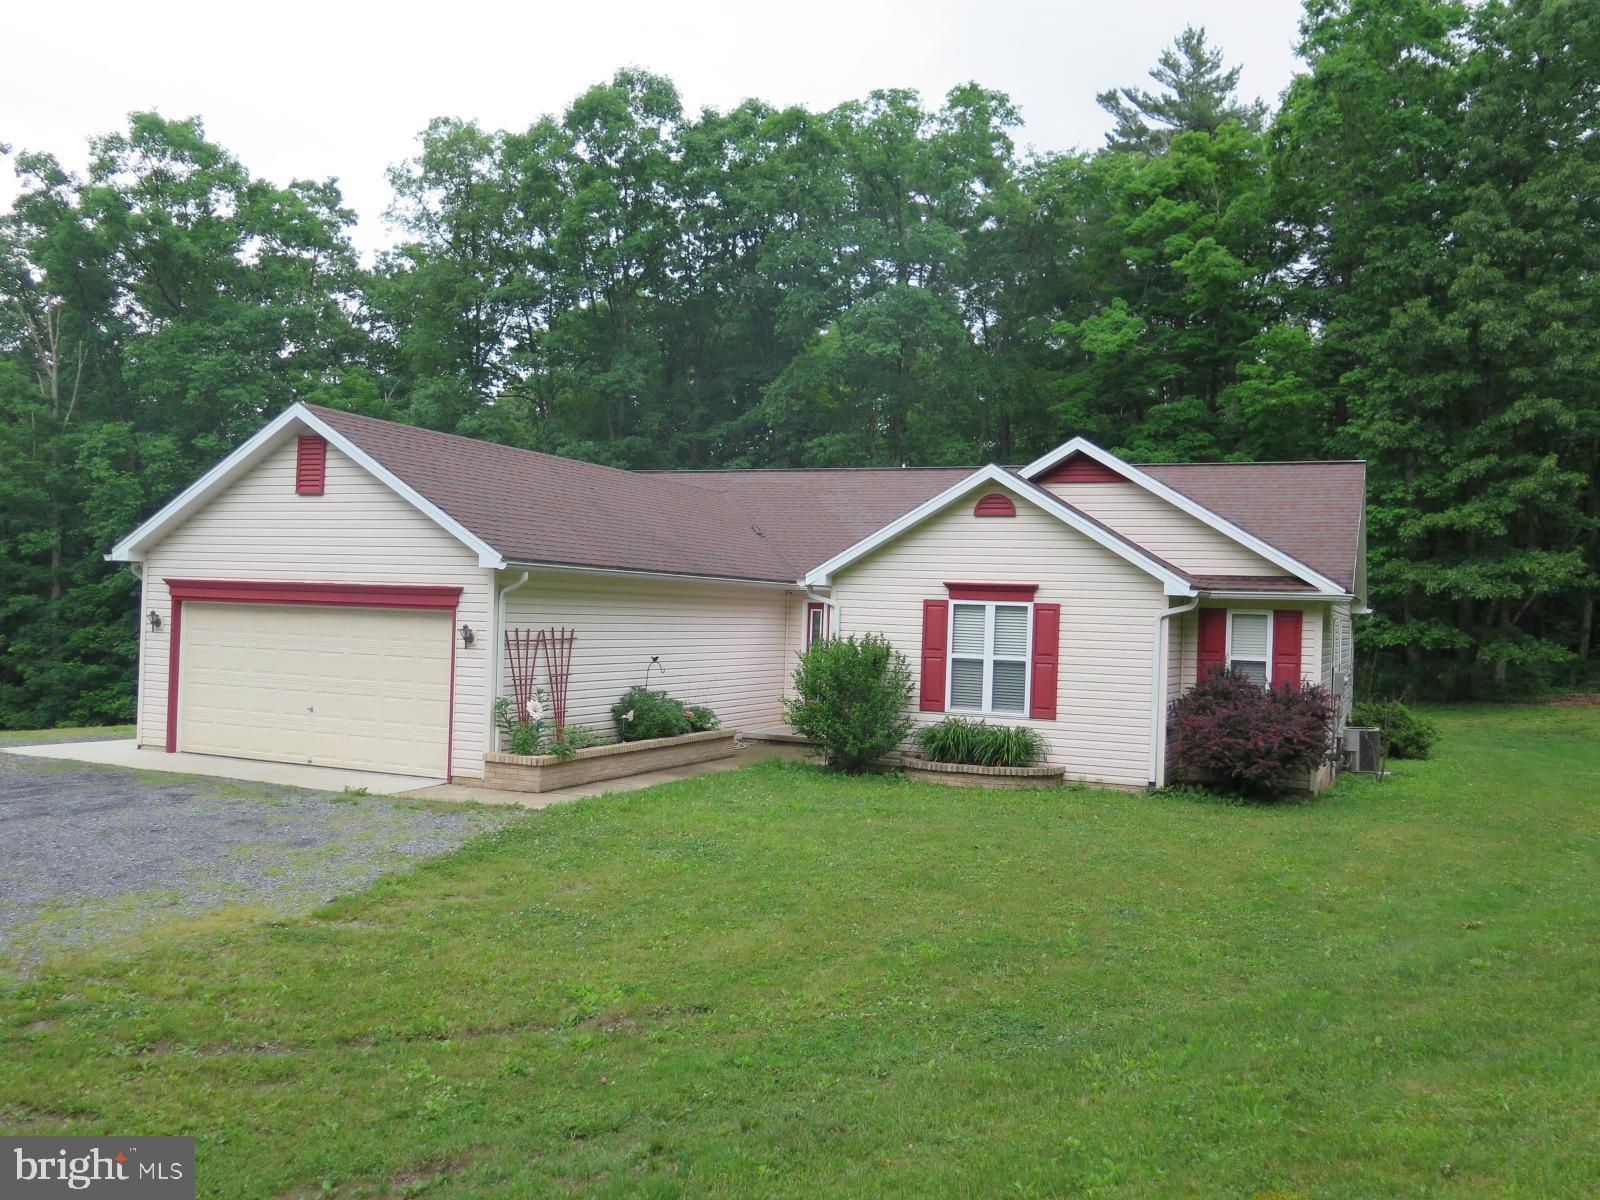 BLUE JAY ACRES LANE, CASSVILLE, PA 16623